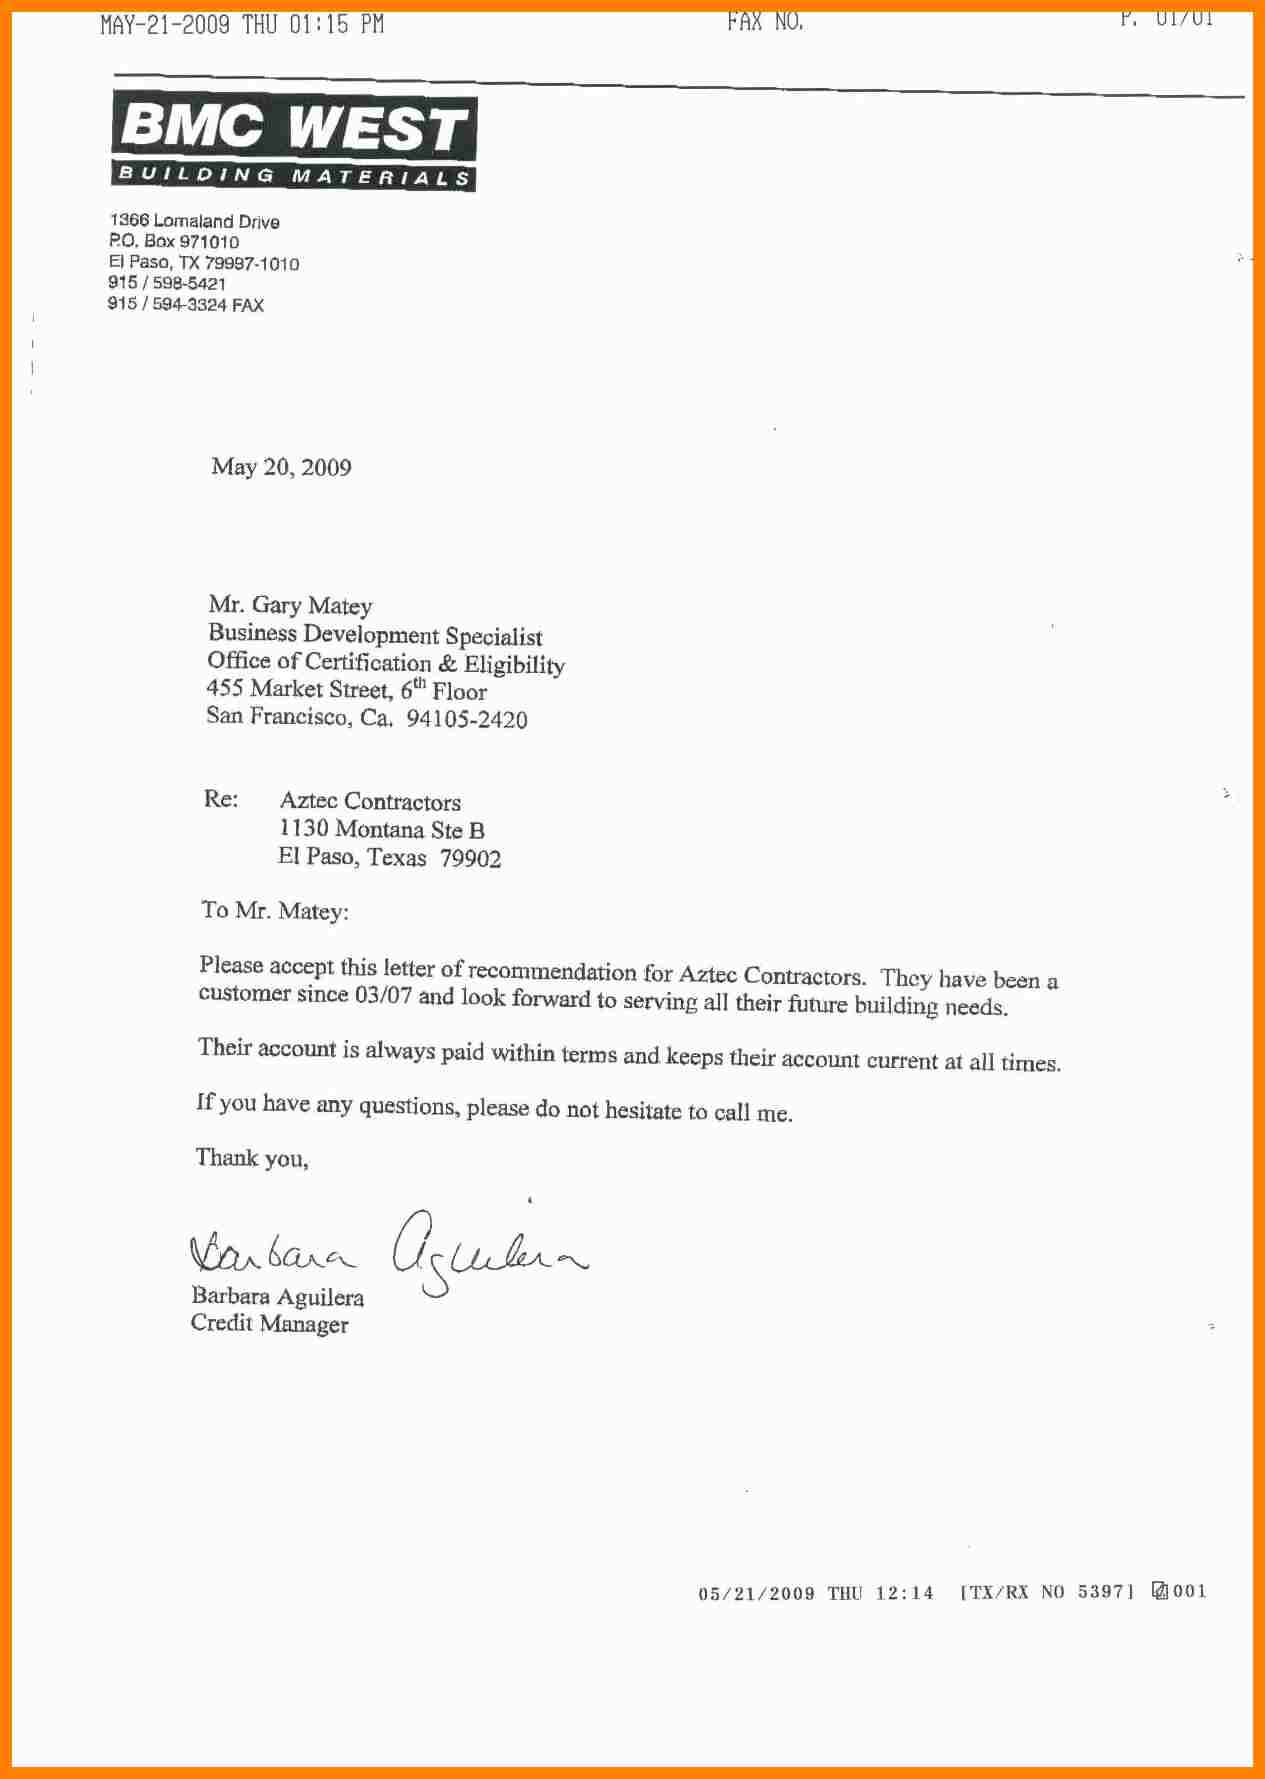 Certificate Of Payment Template - Atlantaauctionco within Certificate Of Payment Template